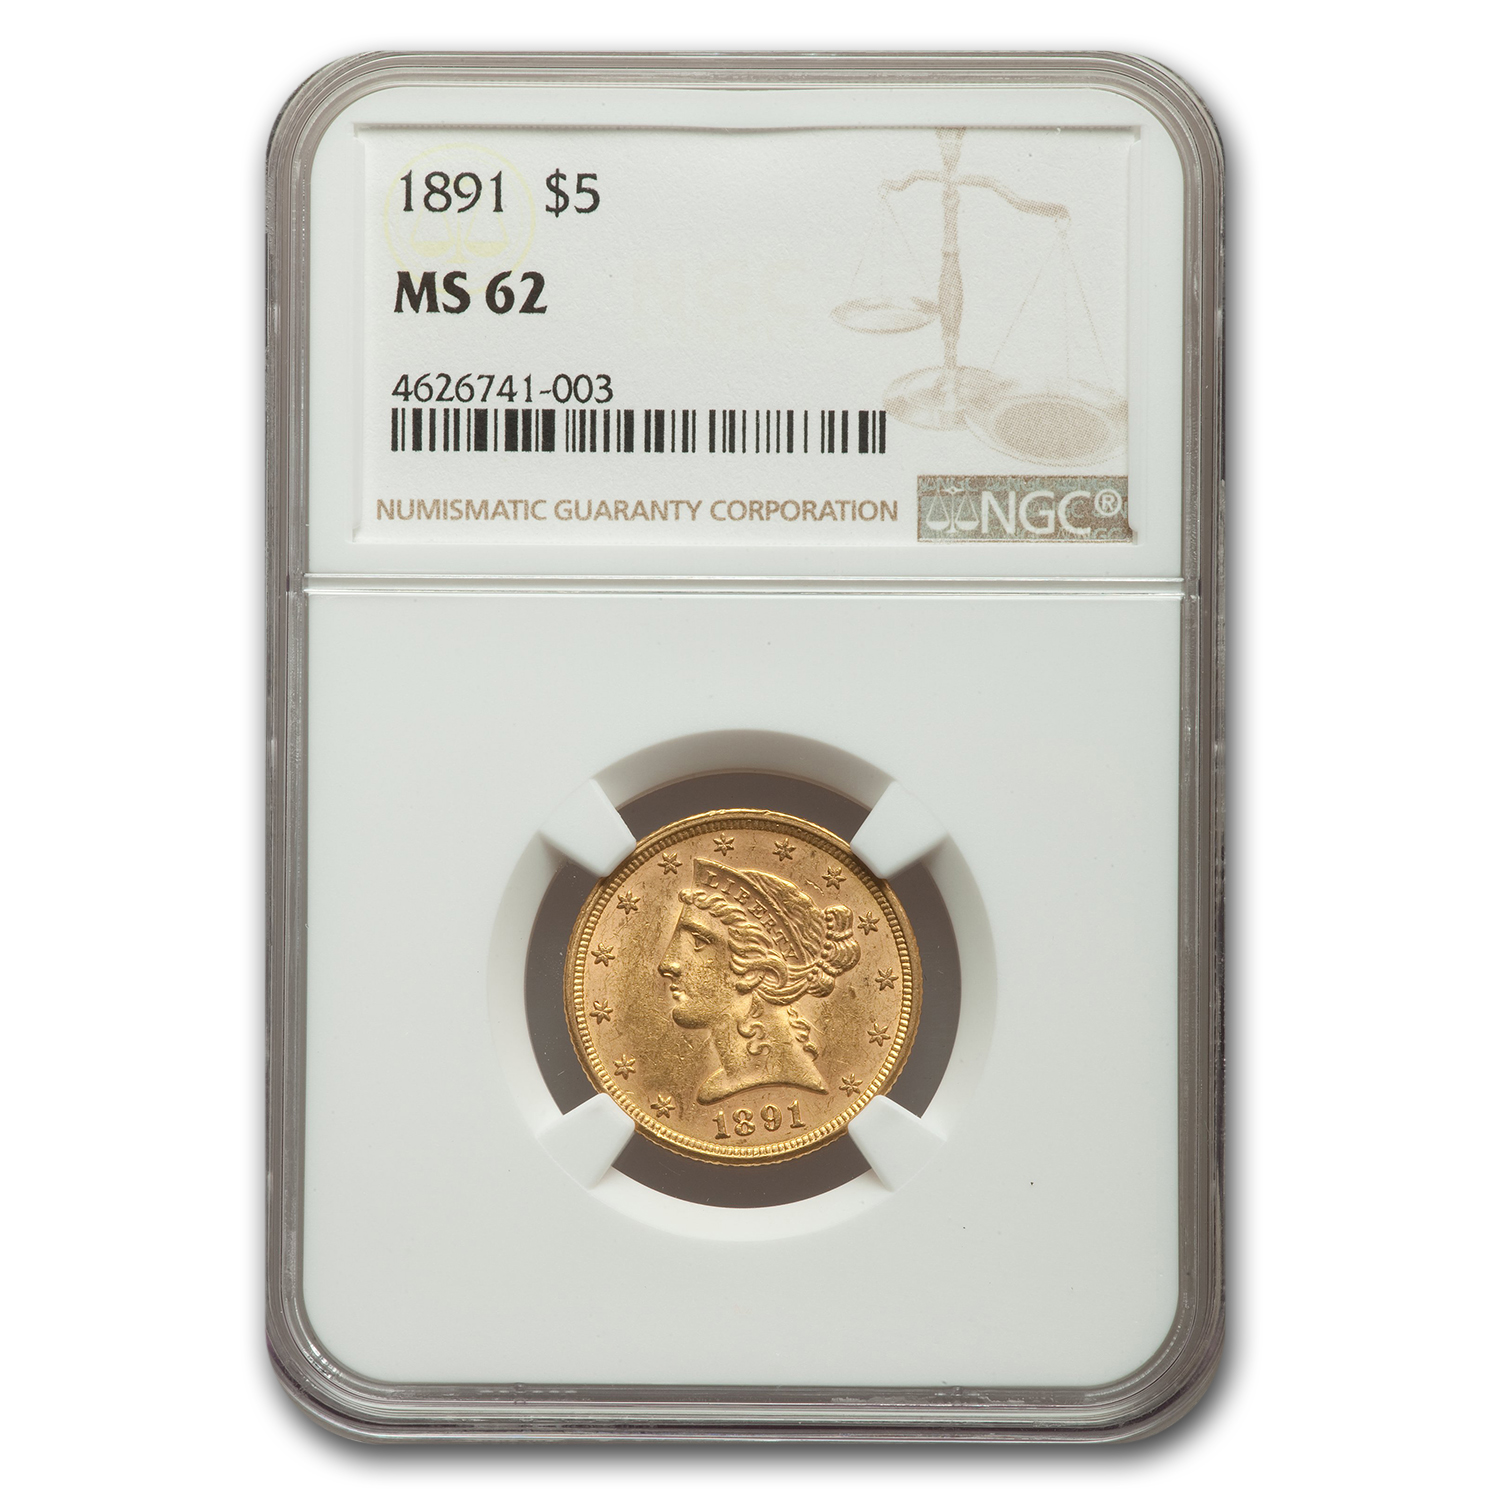 1891 $5 Liberty Gold Half Eagle - MS-62 NGC